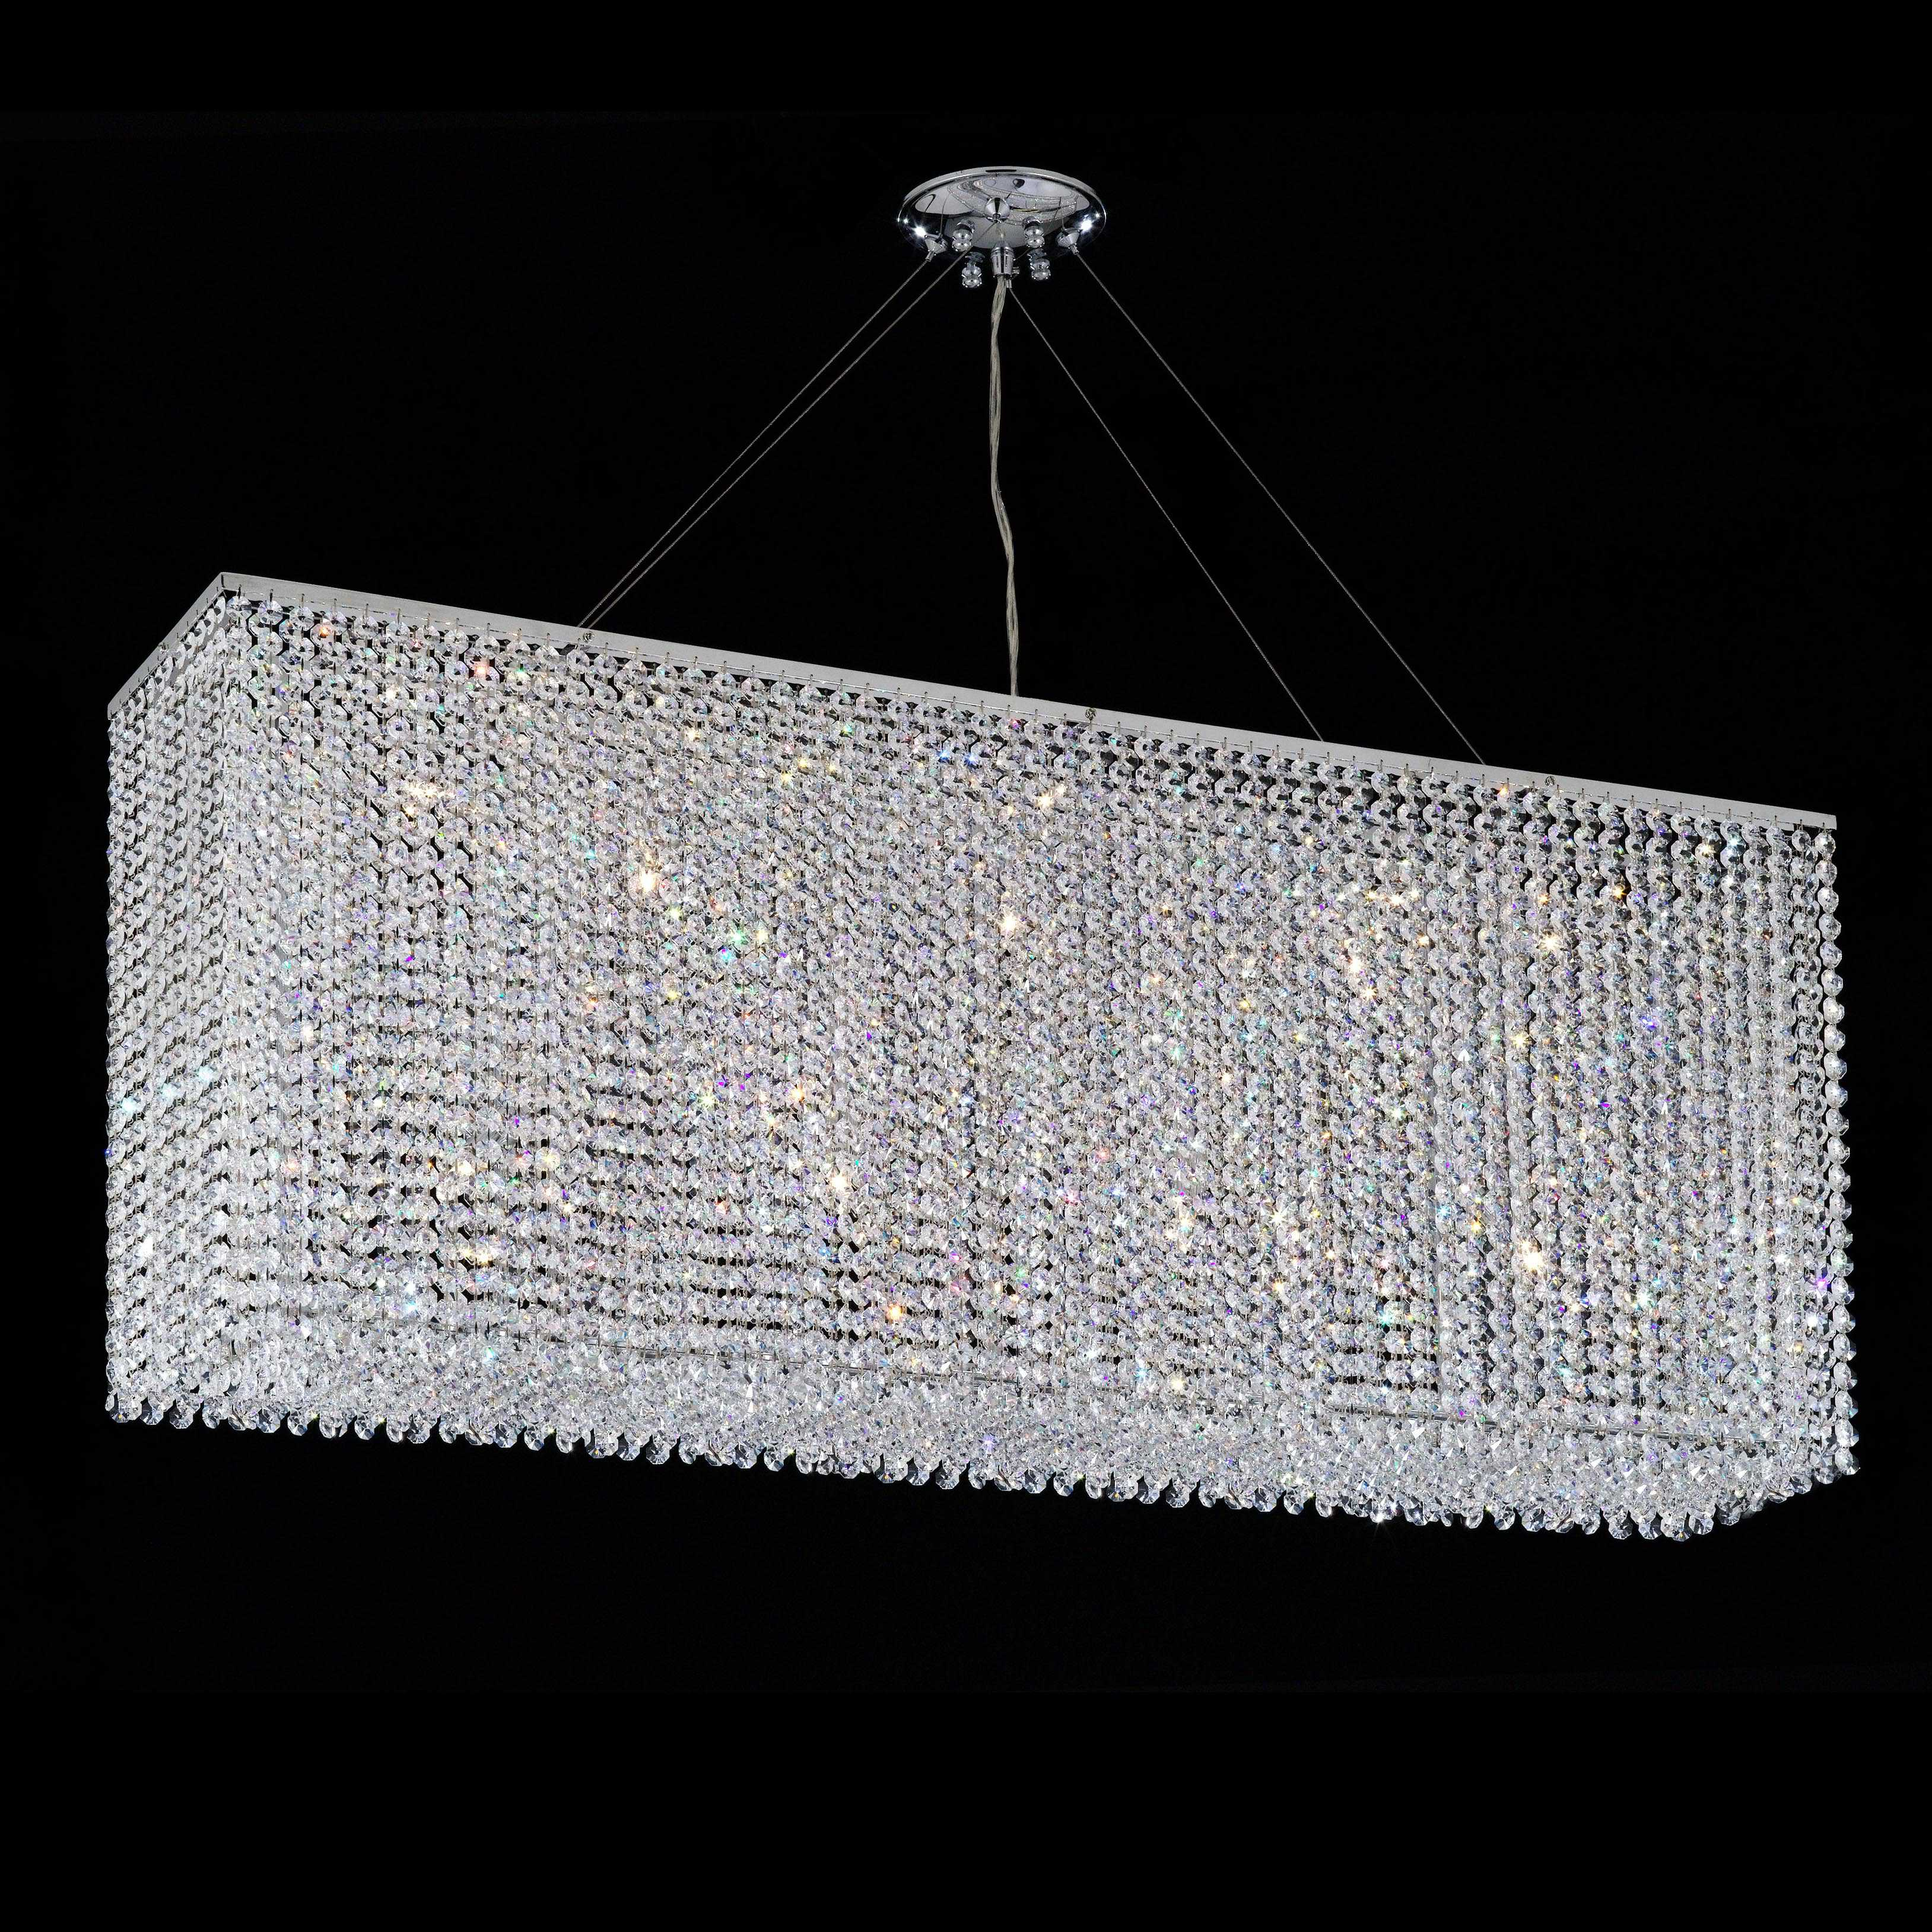 Quadrix 42 inch grand chandelier with clear crystal 8430 42 quadrix 42 inch grand chandelier with clear crystal 8430 42 aloadofball Gallery